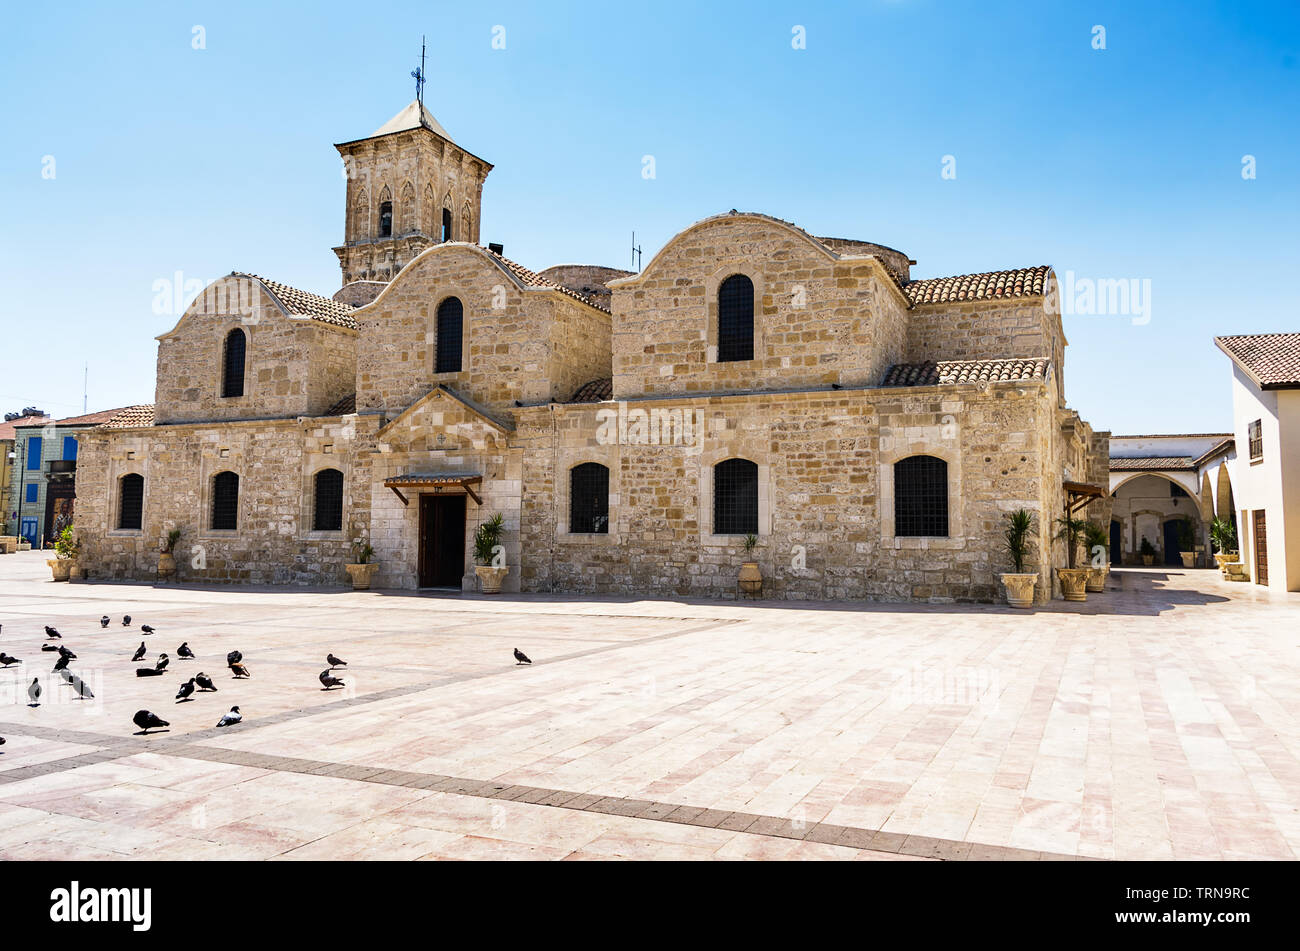 Located in its own square in the town centre, the magnificent stone church of Agios Lazaros is one of the most remarkable examples of Byzantine archit - Stock Image